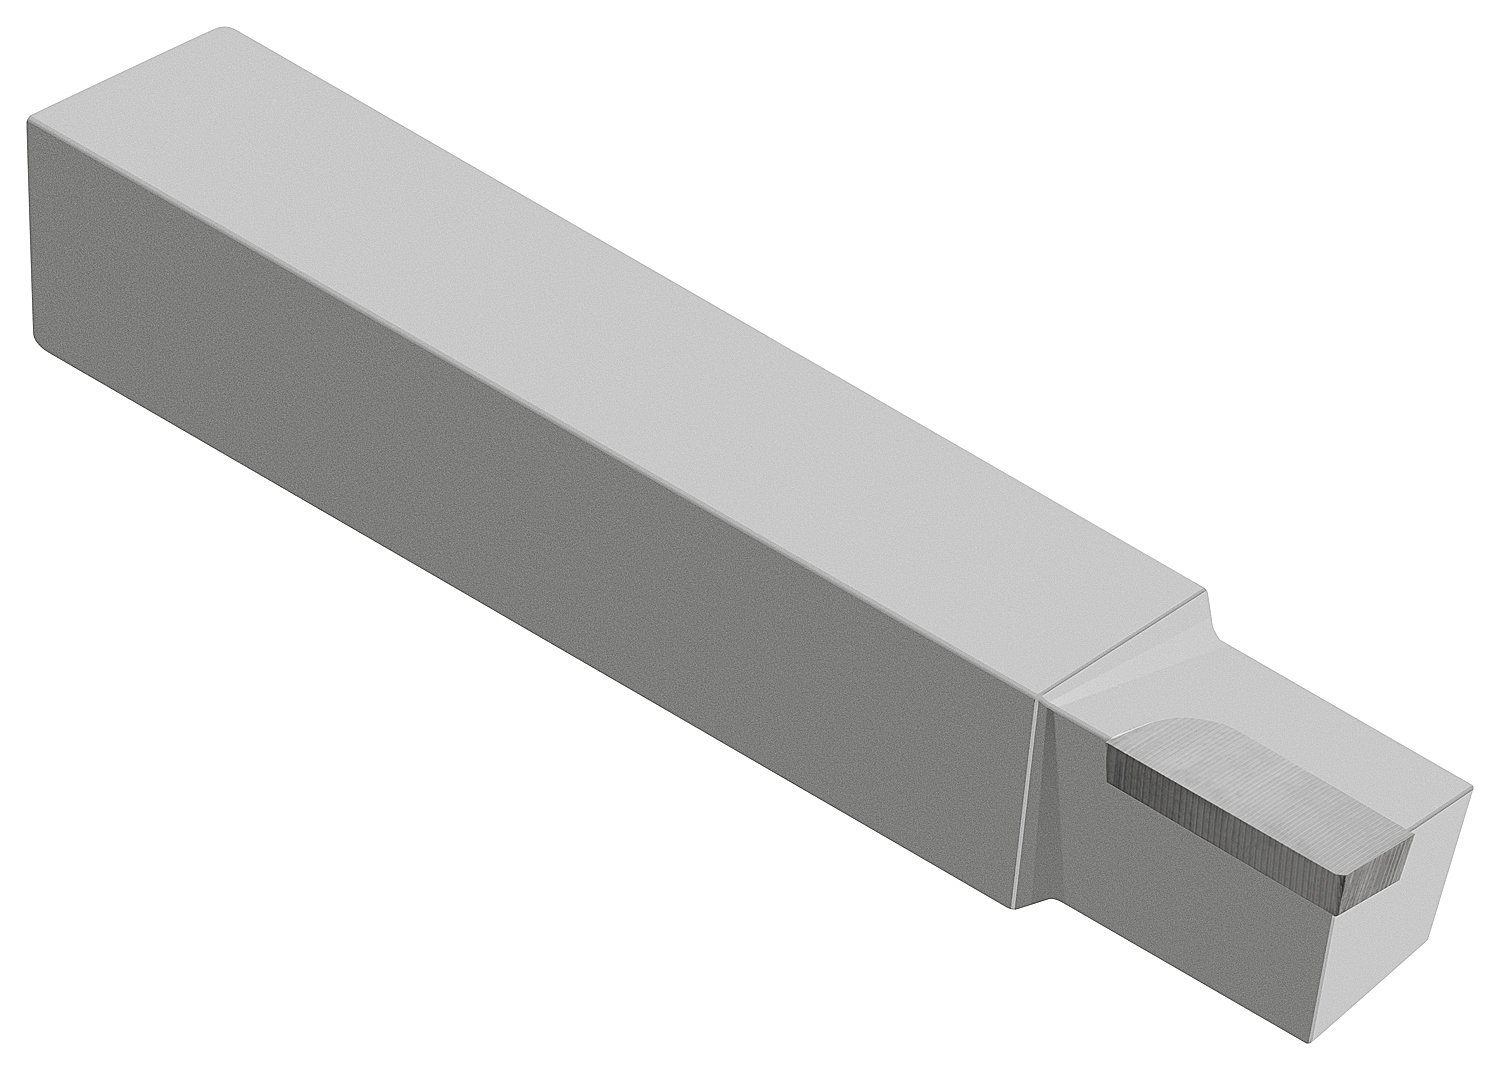 Micro 100 AL-8 Brazed Tool 1//32 Radius 1//2 Length Left Hand Square Shank DiameterStyle A 1//4 Width 1//2 Width Tip Dimension of 1//8 Thick 3.500 Length 1//2 Height